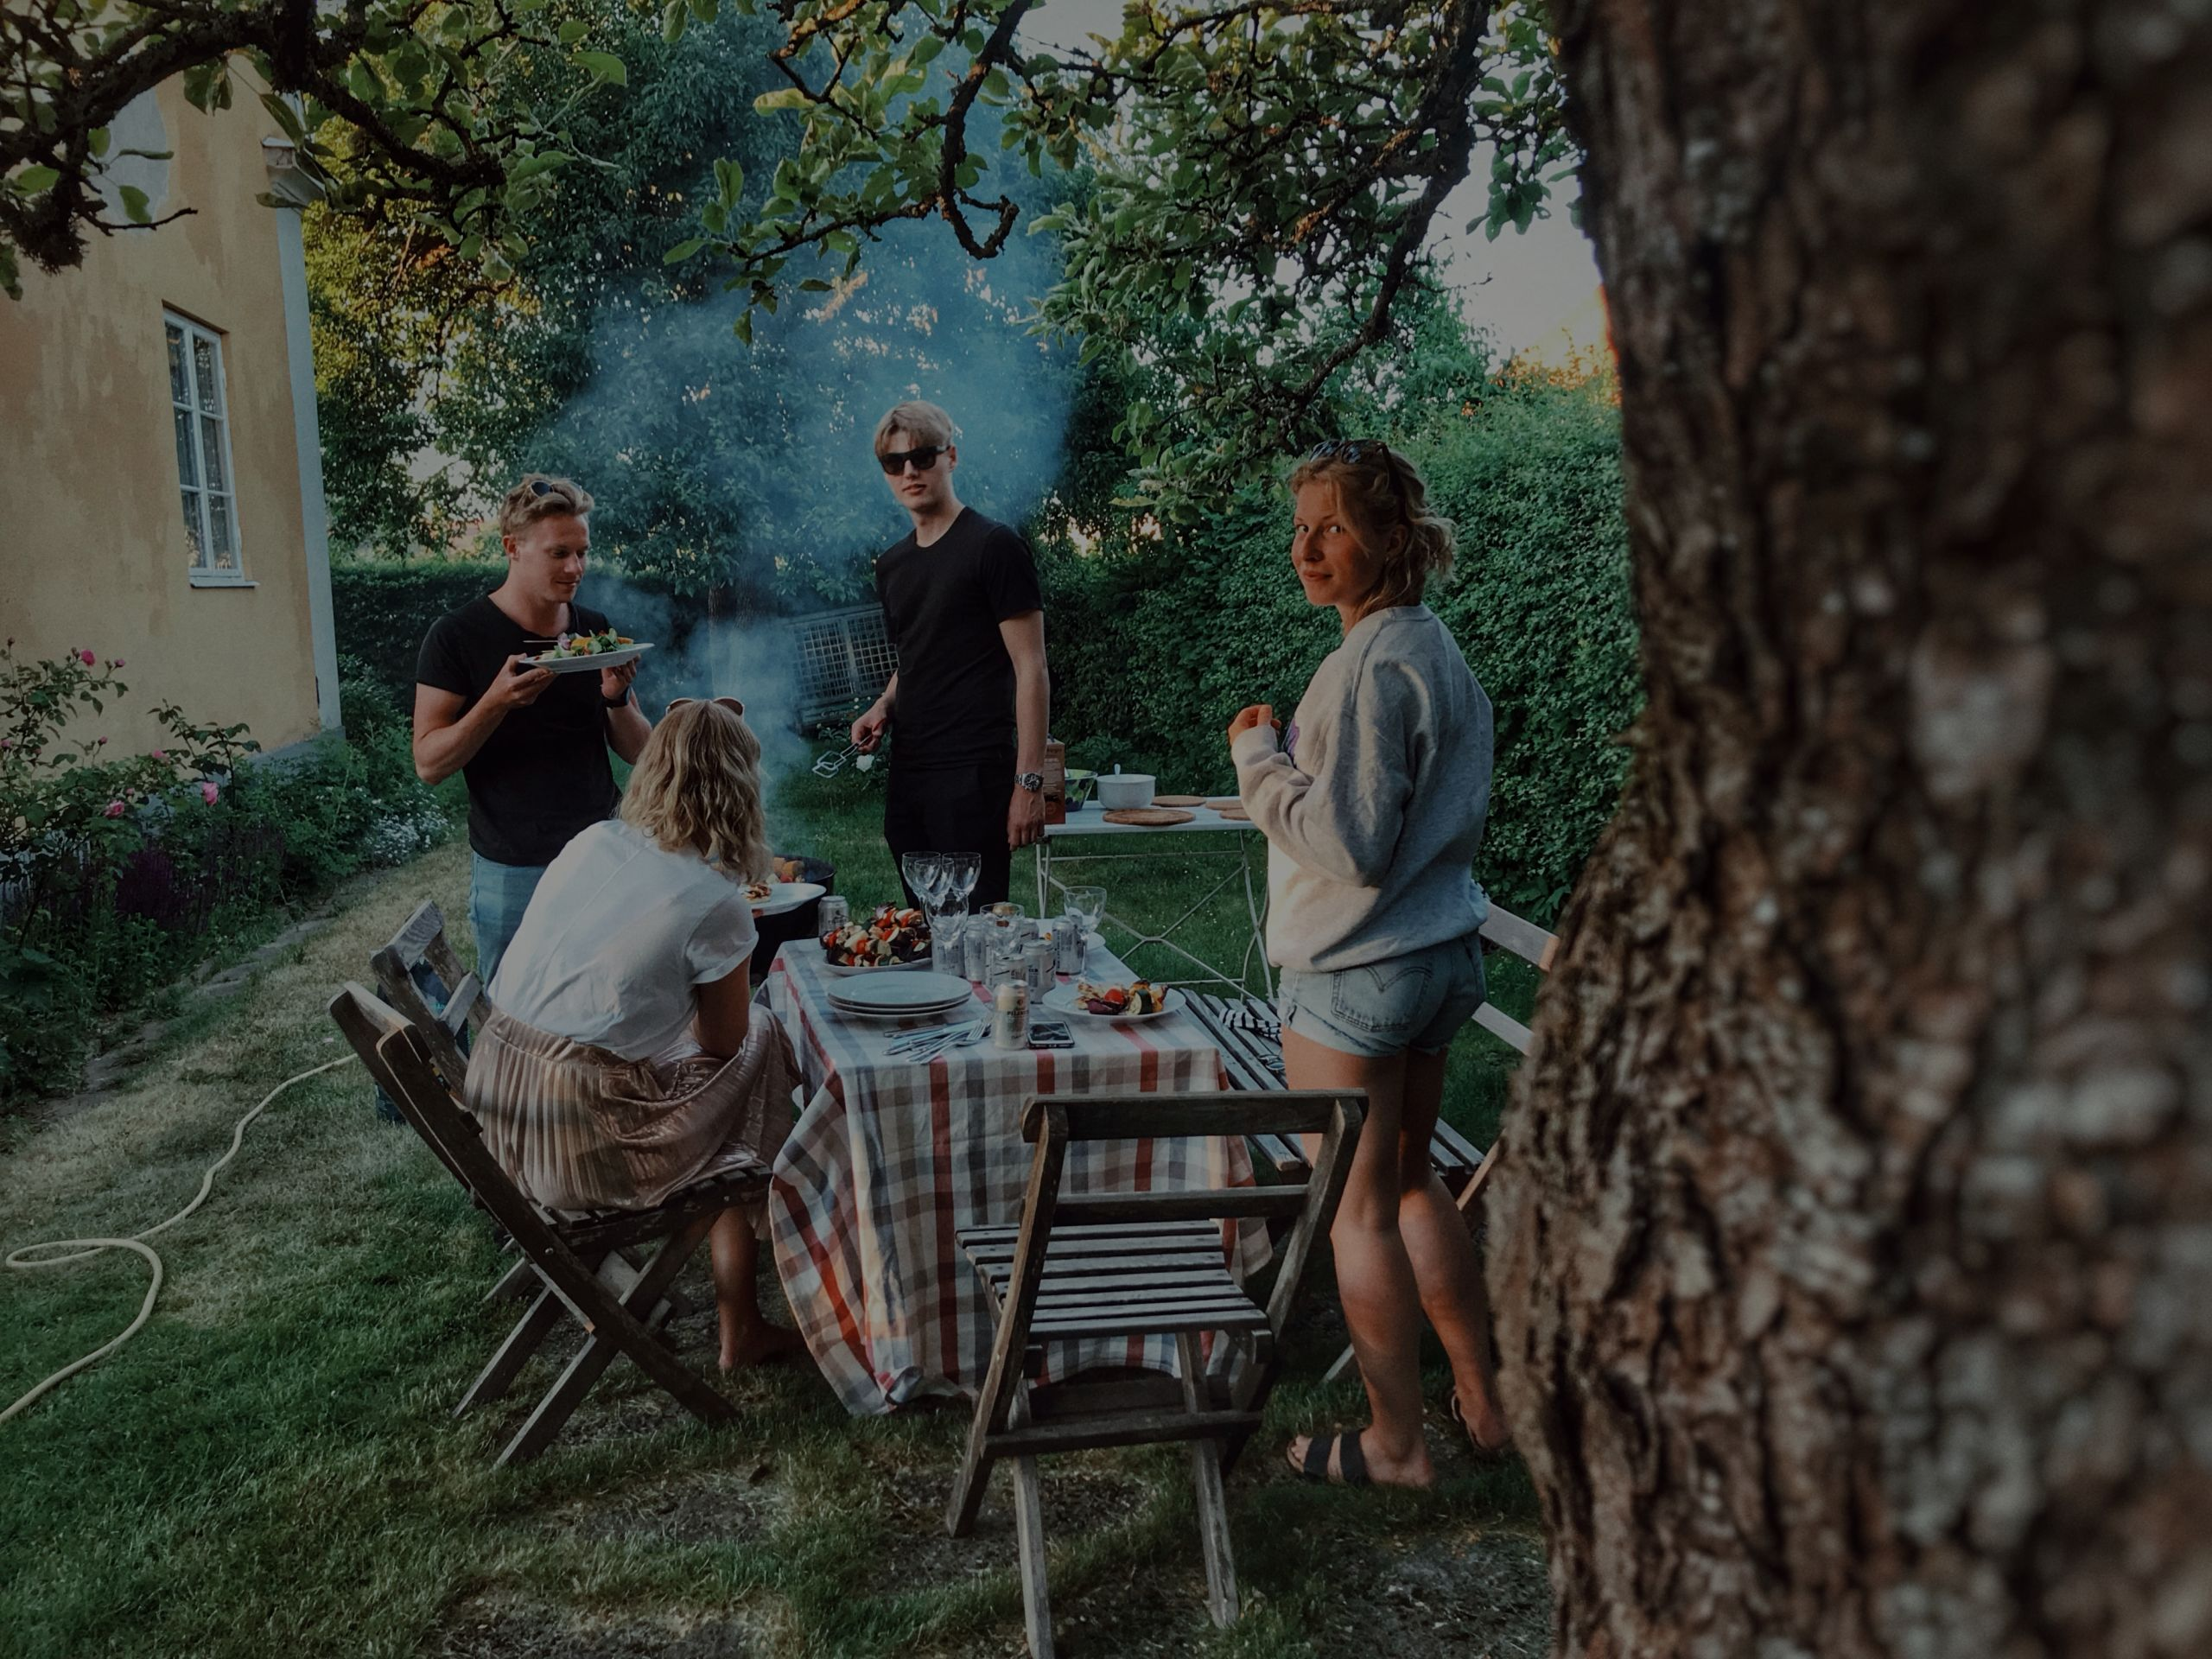 Hosting Summer Gatherings with Social Distancing